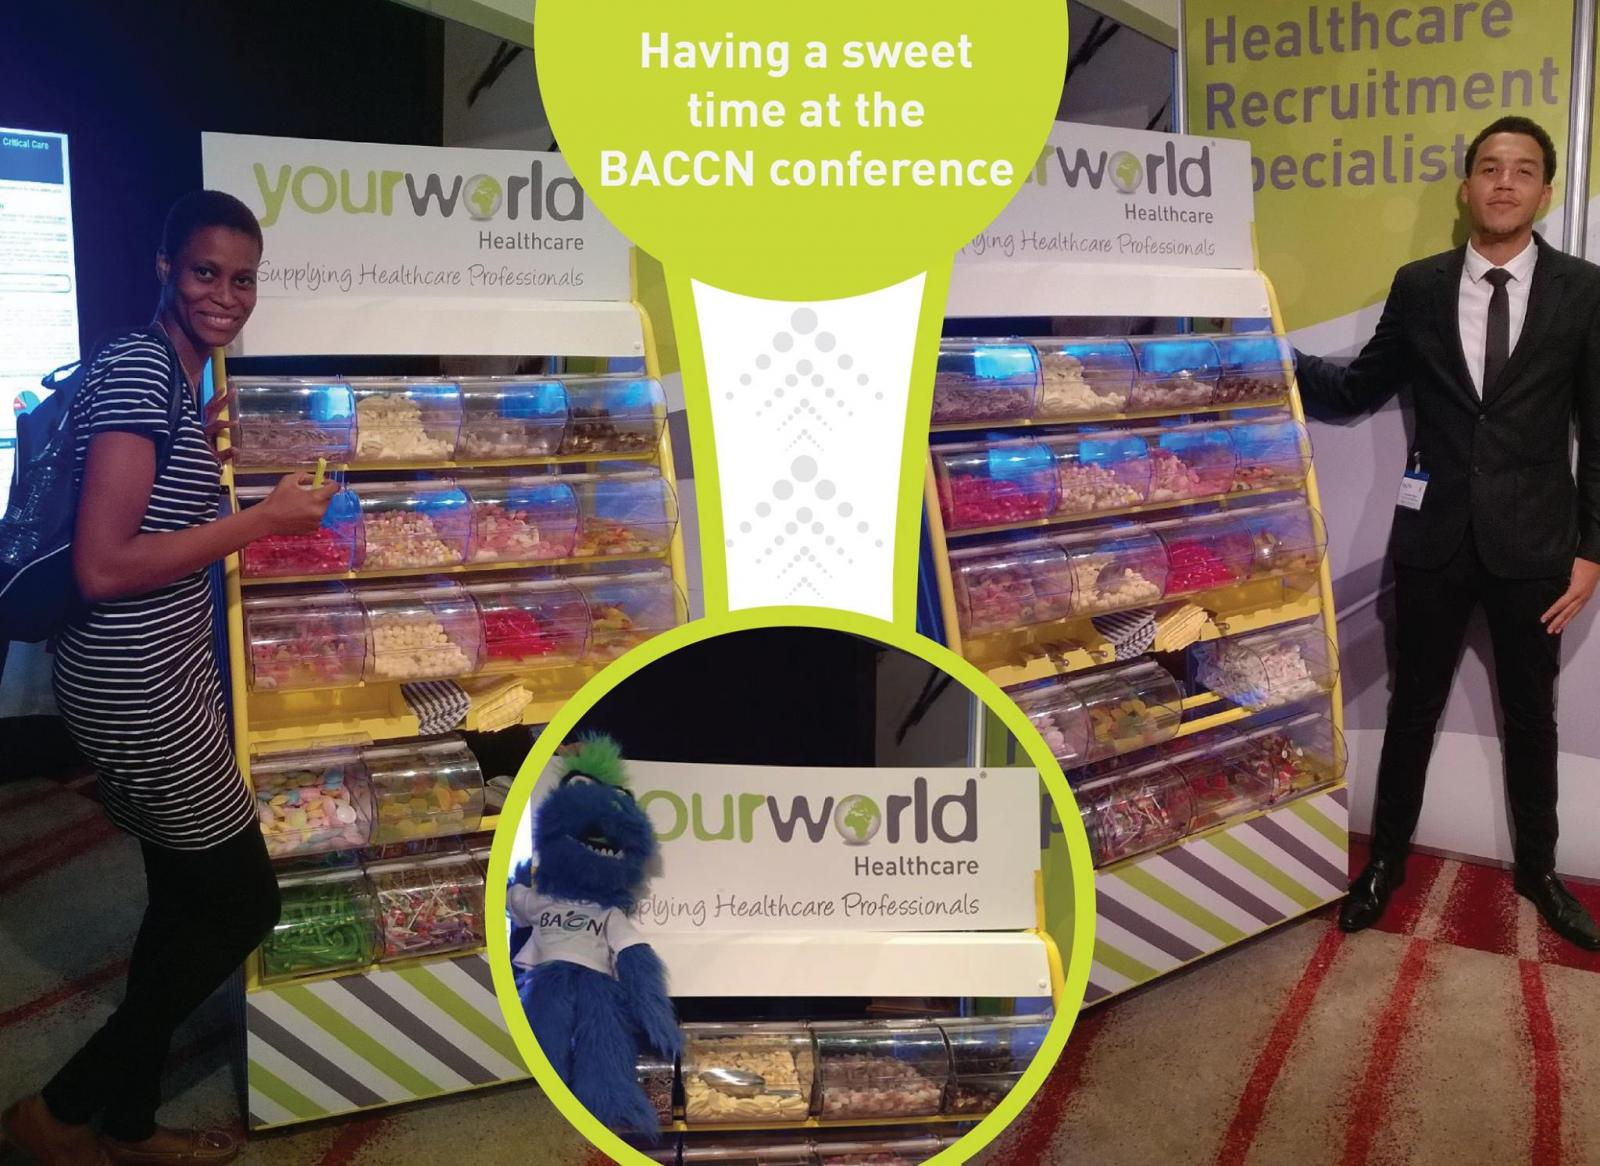 Your World Healthcare gives sweets to delegates at the BACCN conference